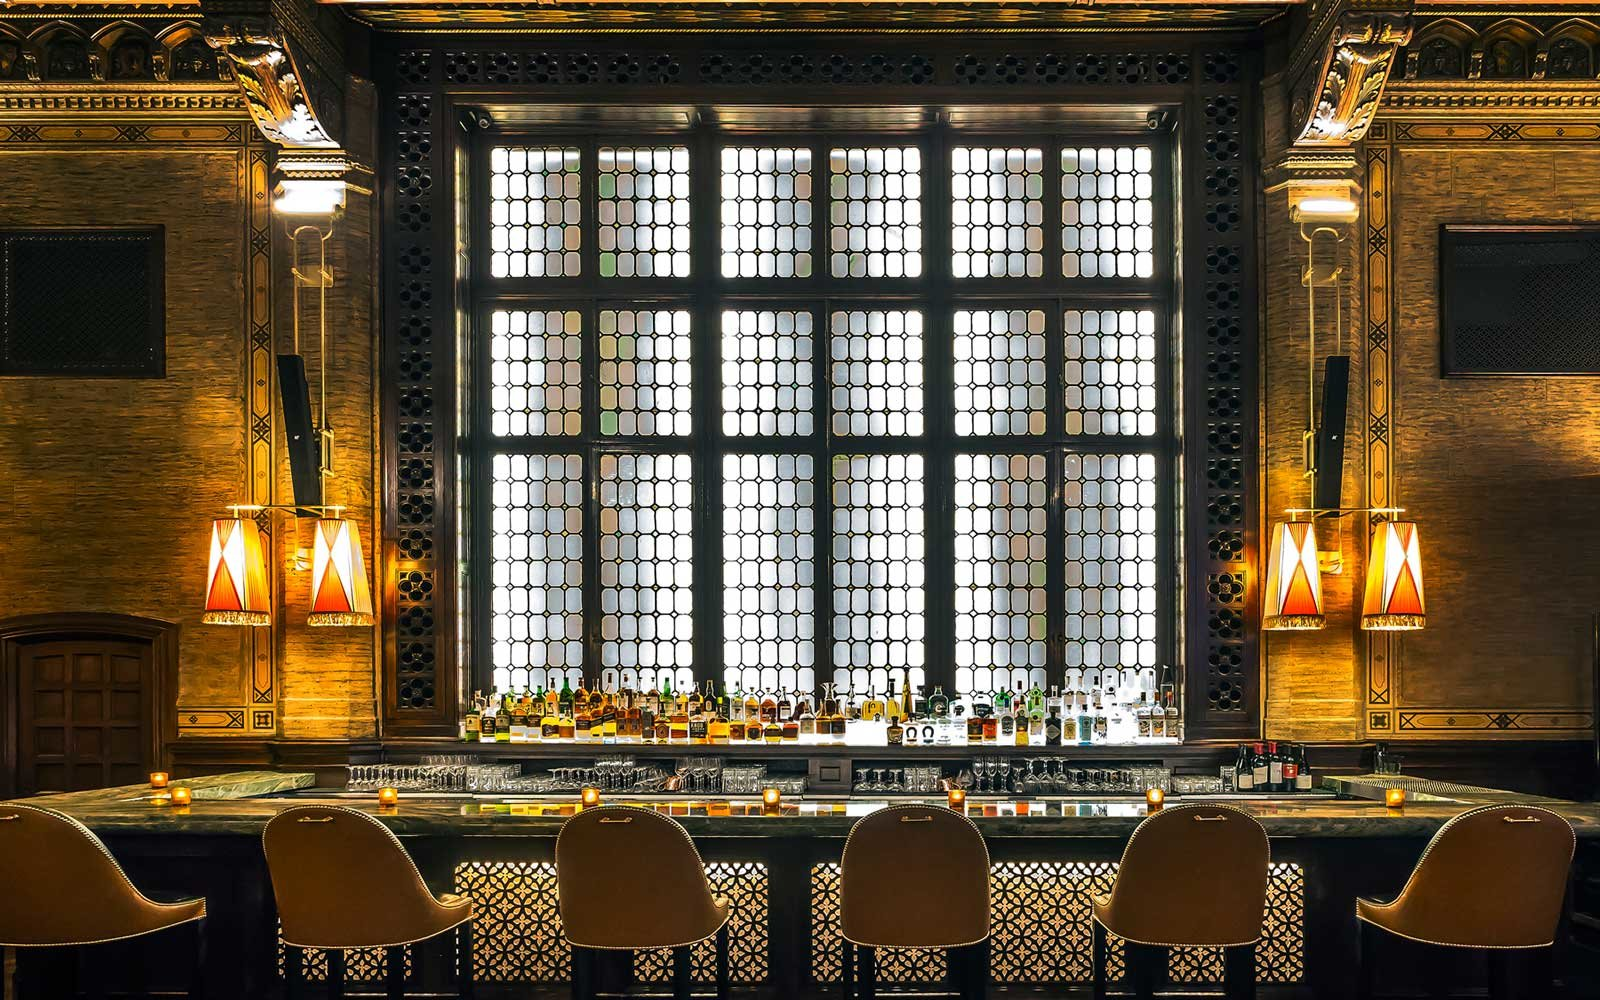 Grand Central's secret bar just reopened | Travel + Leisure